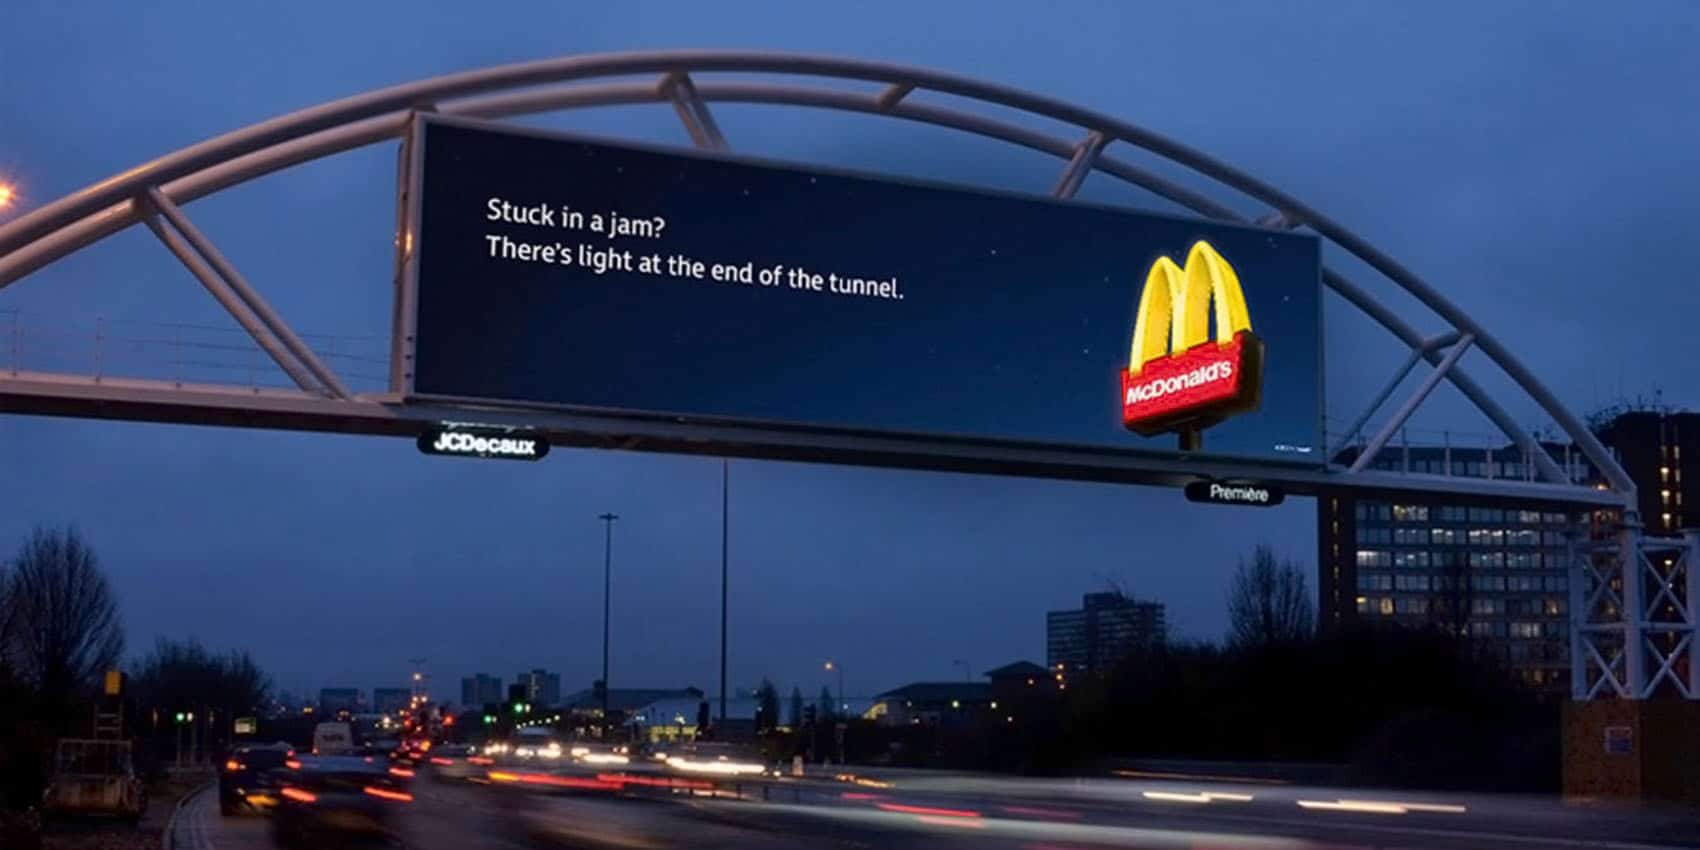 Mcdonald's : du big mac au big data